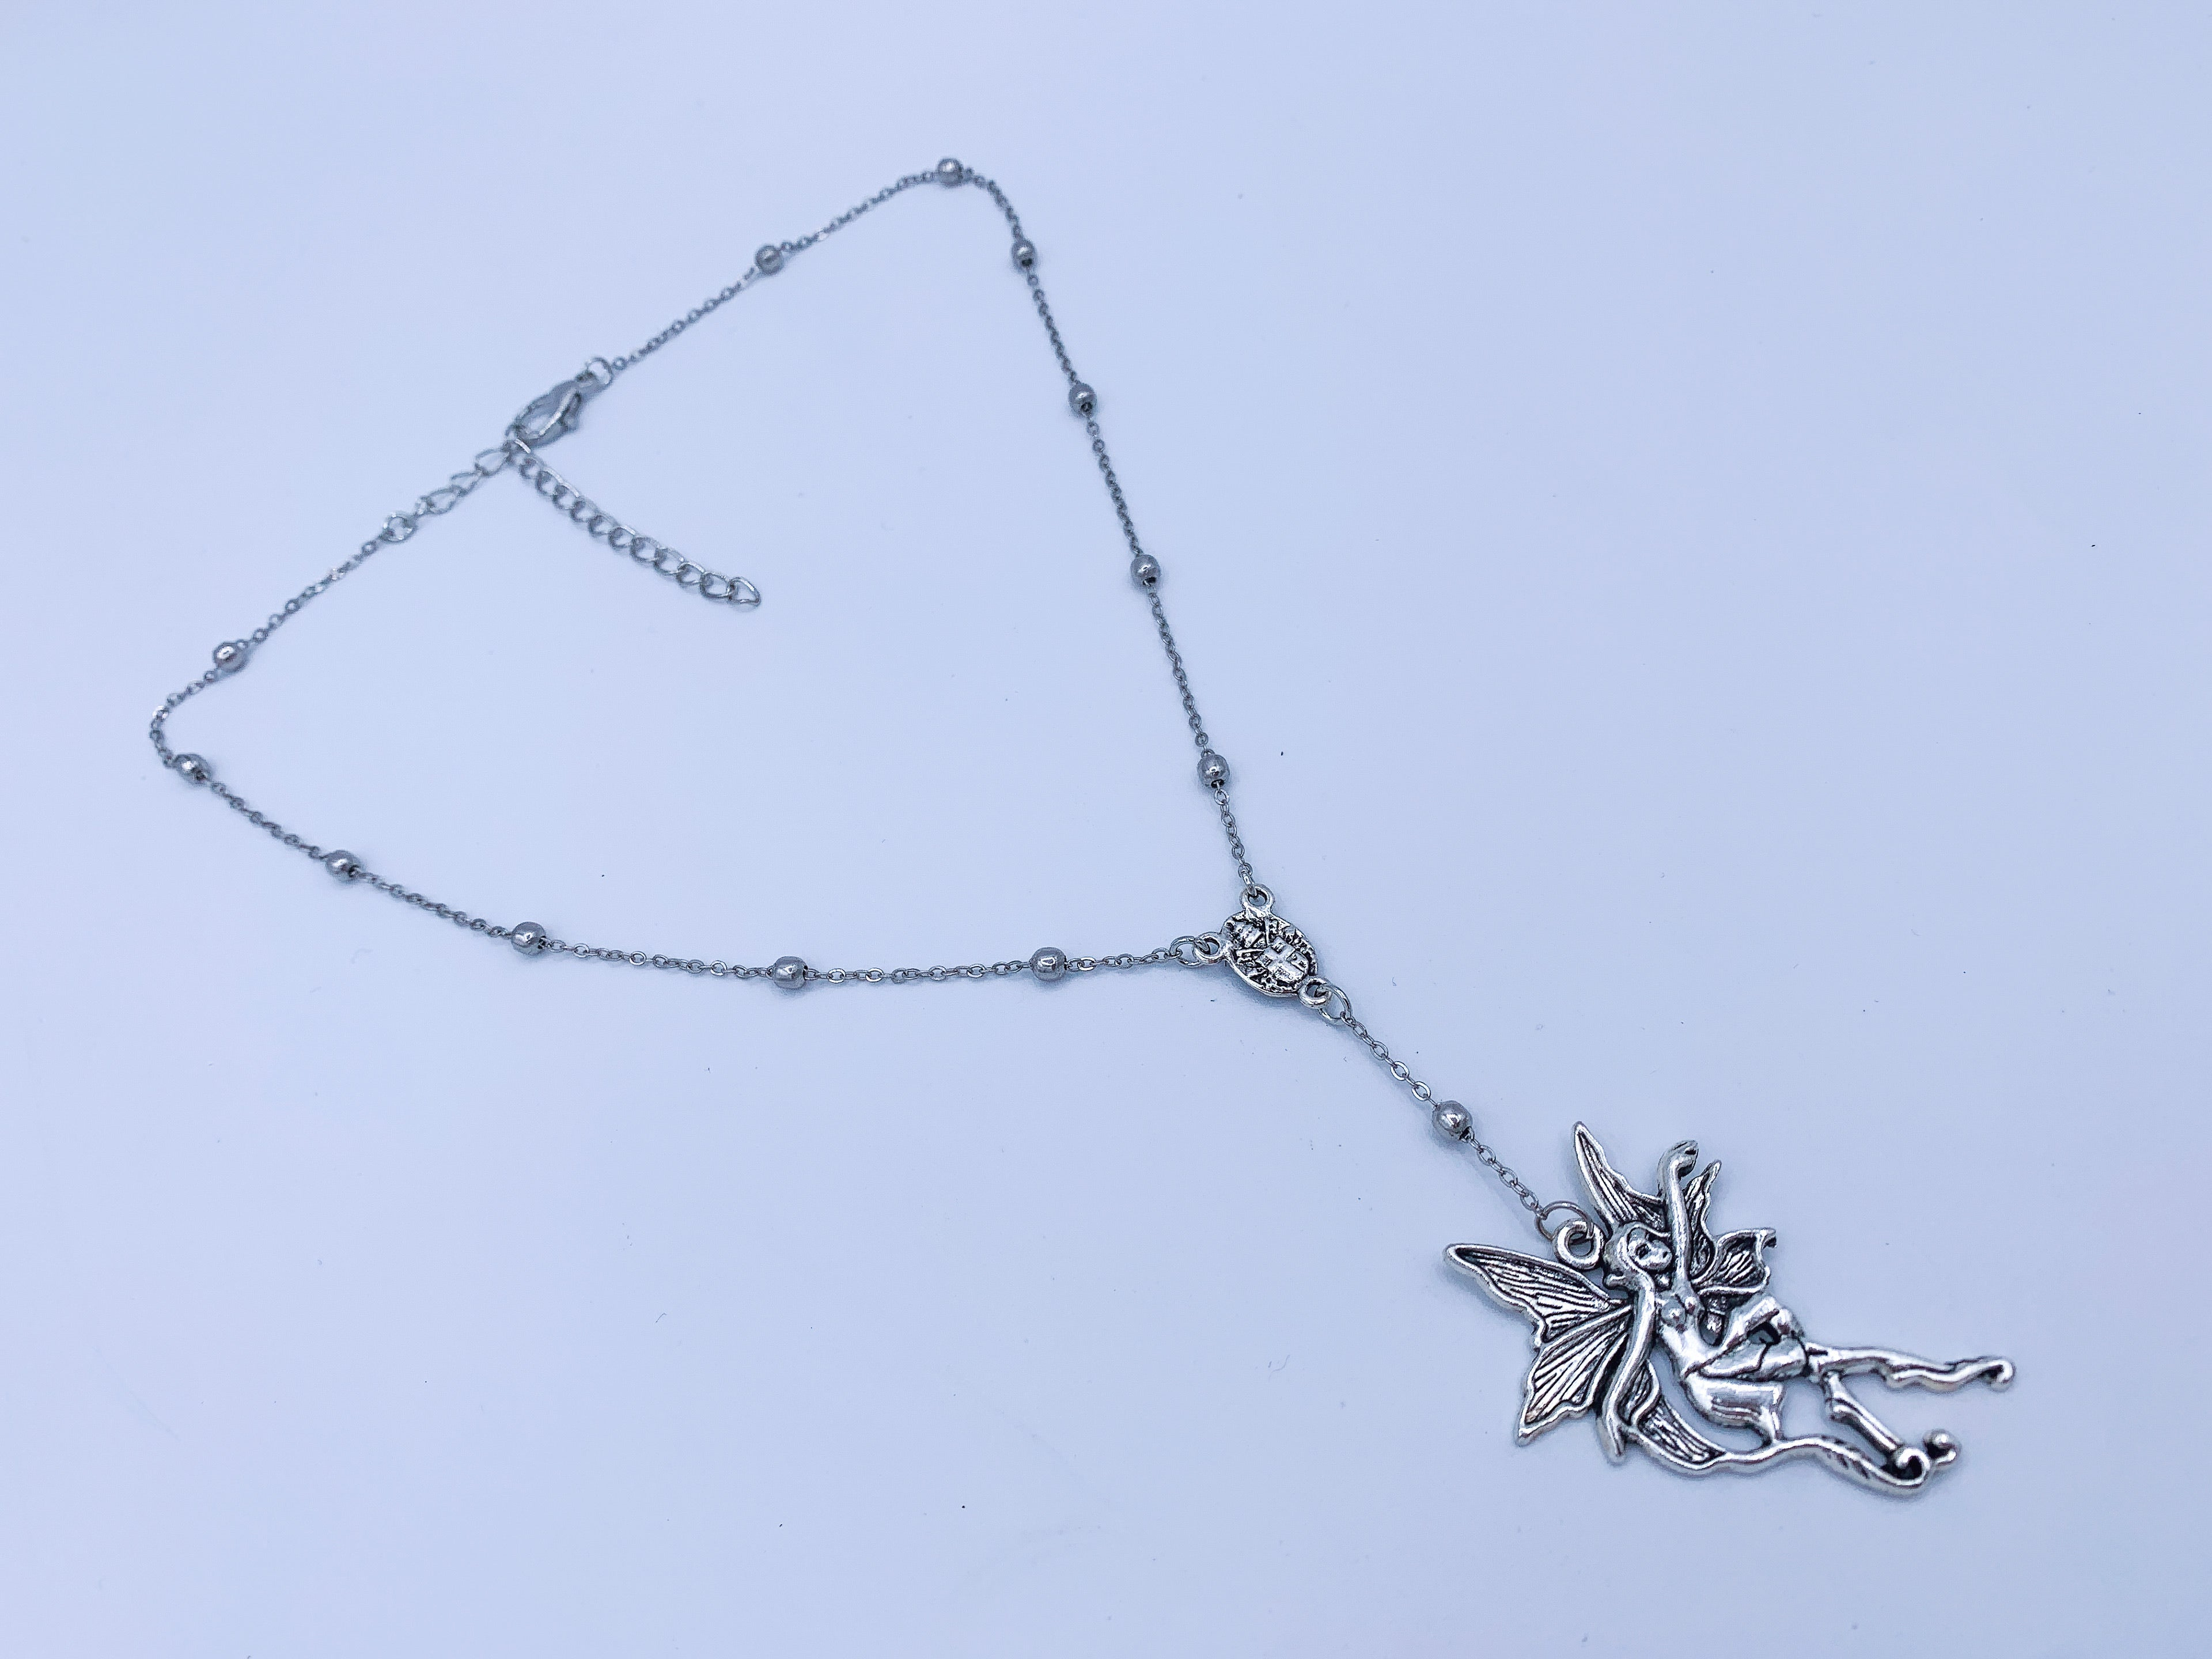 Faerie rosary